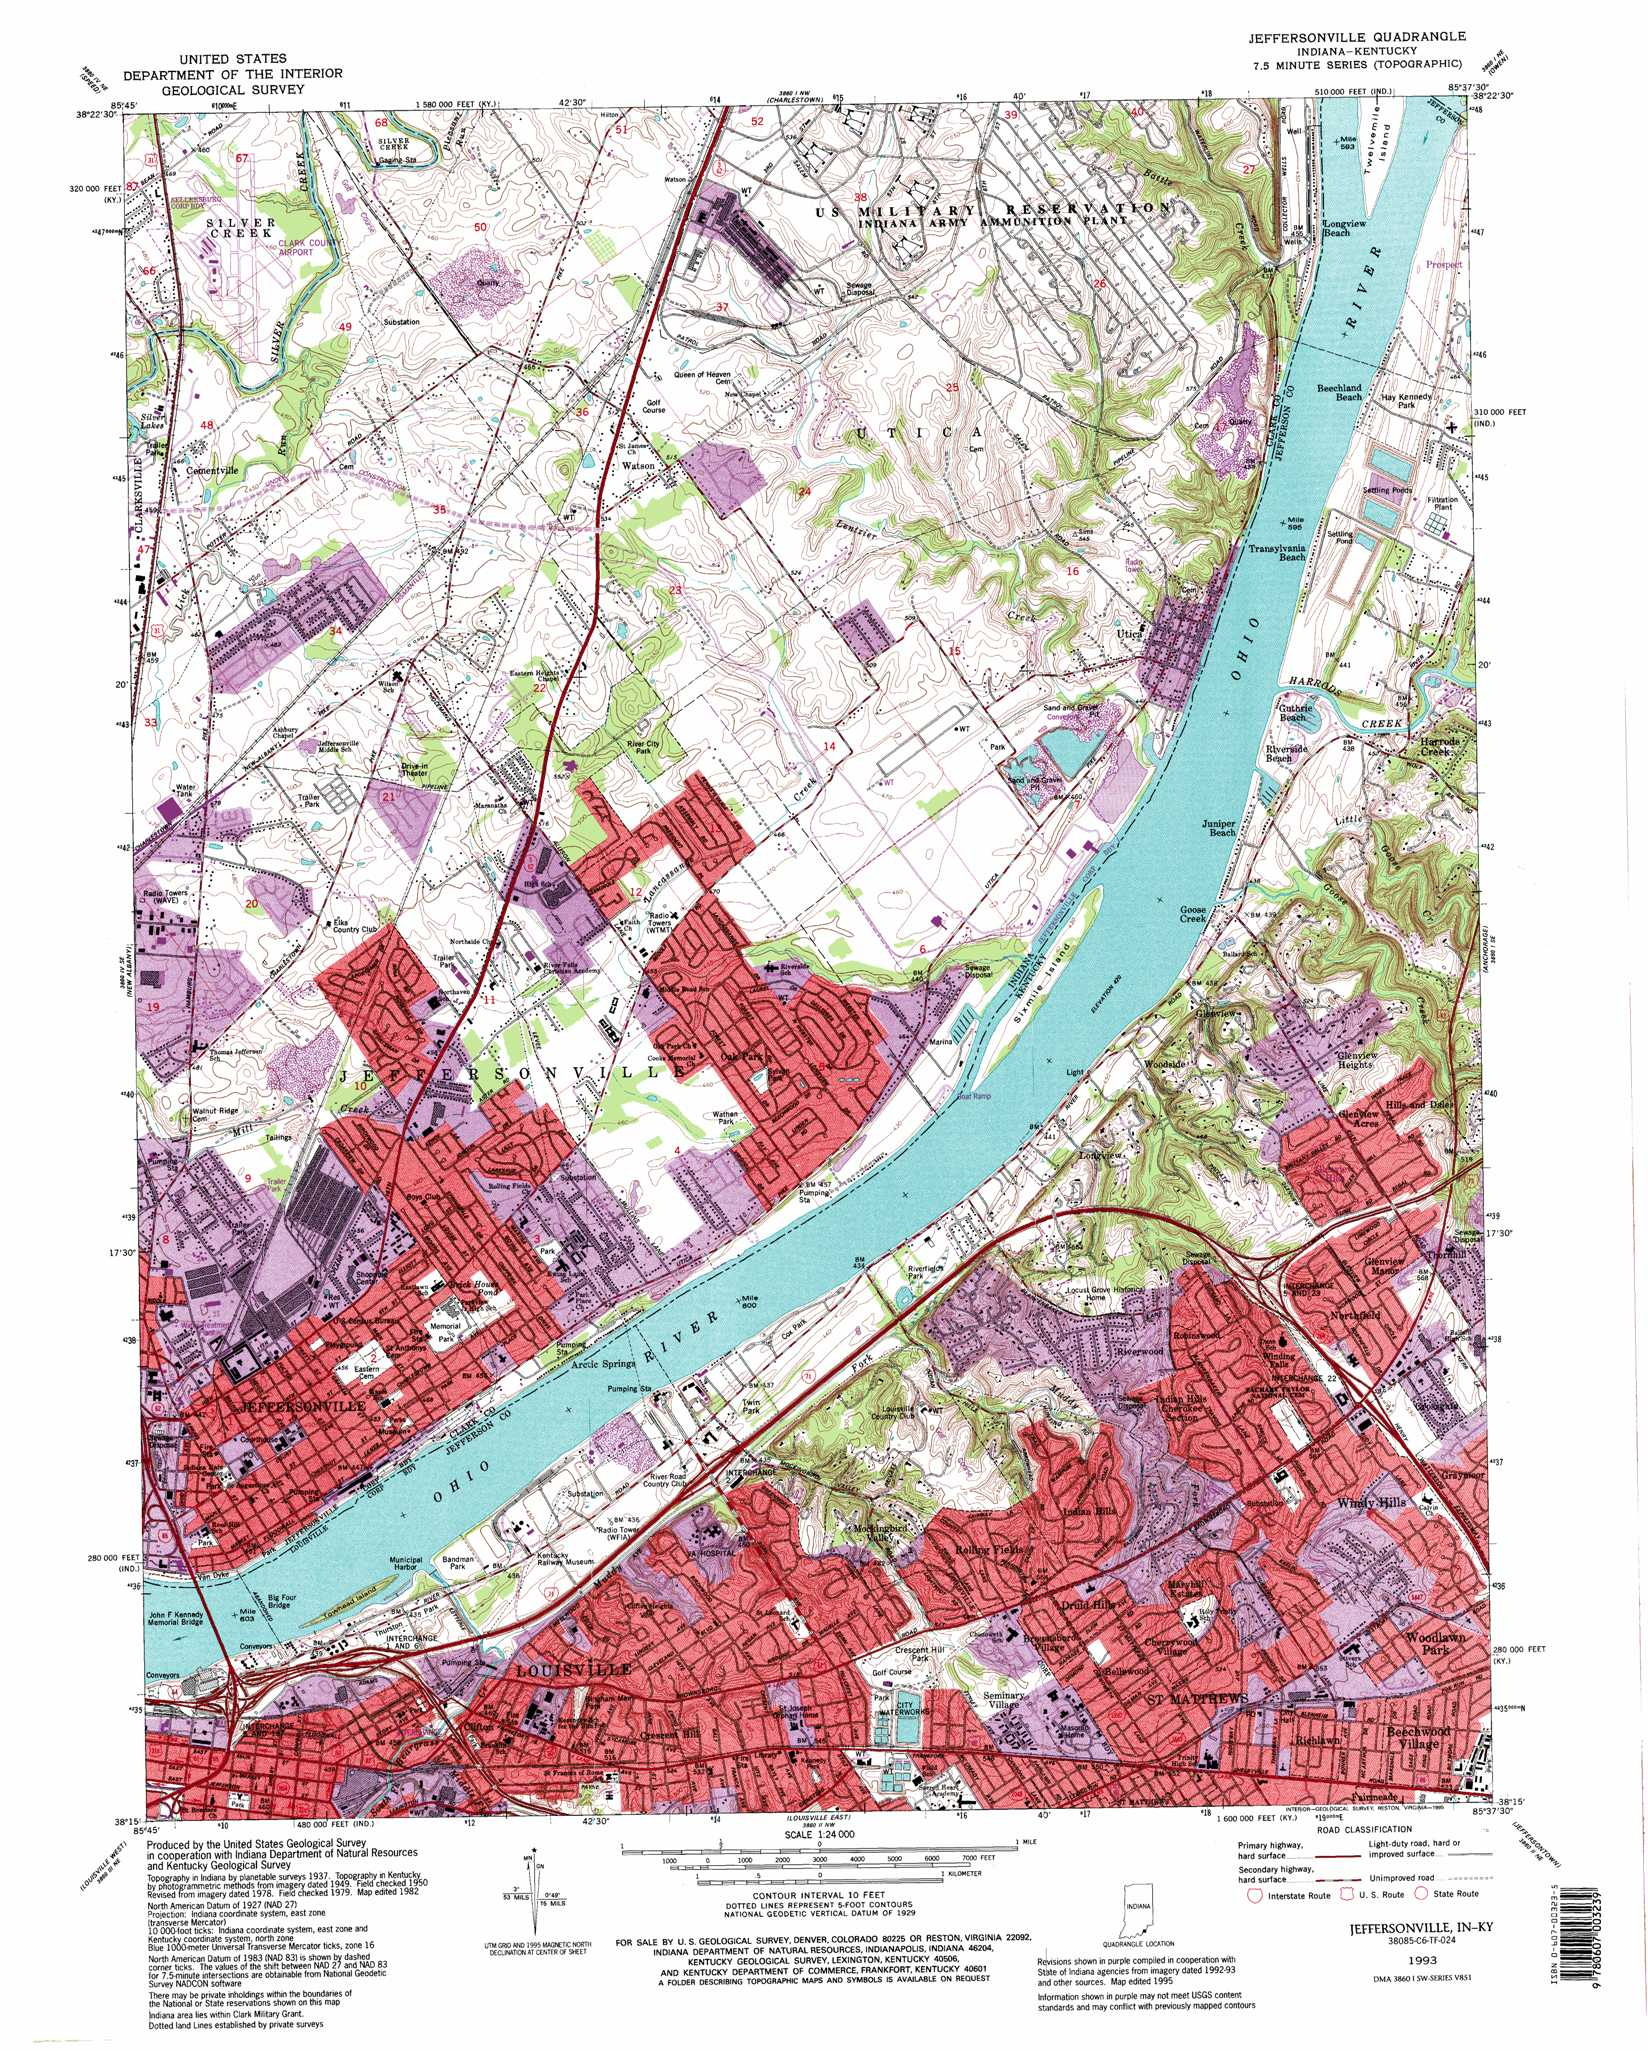 Jeffersonville topographic map, IN, KY - USGS Topo Quad 38085c6 on indiana division of reclamation, kentucky geological survey maps, wyoming department of transportation maps,